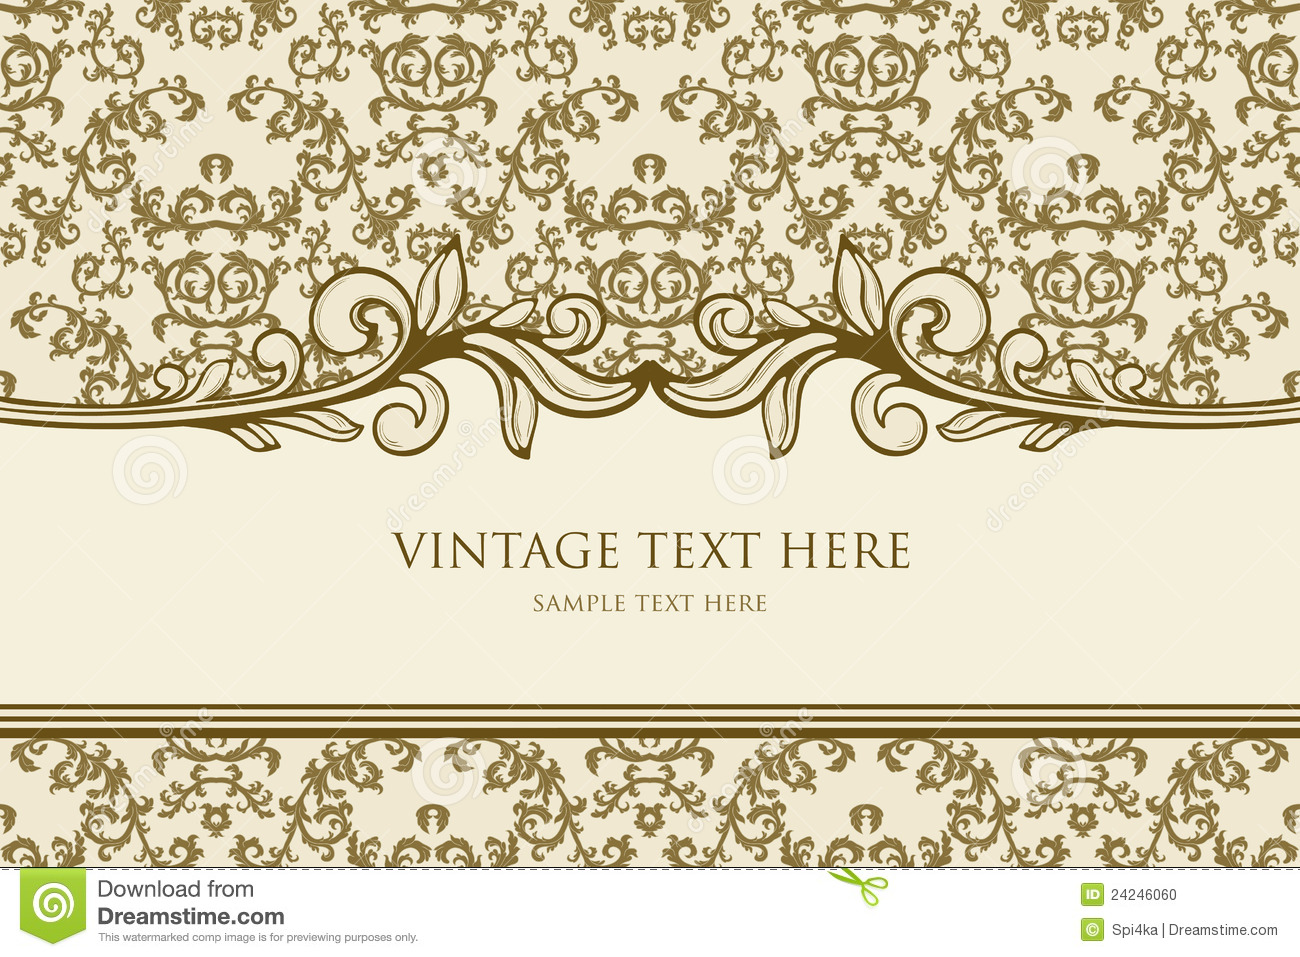 Http Www Dreamstime Com Stock Photo Vintage Frame Image24246060